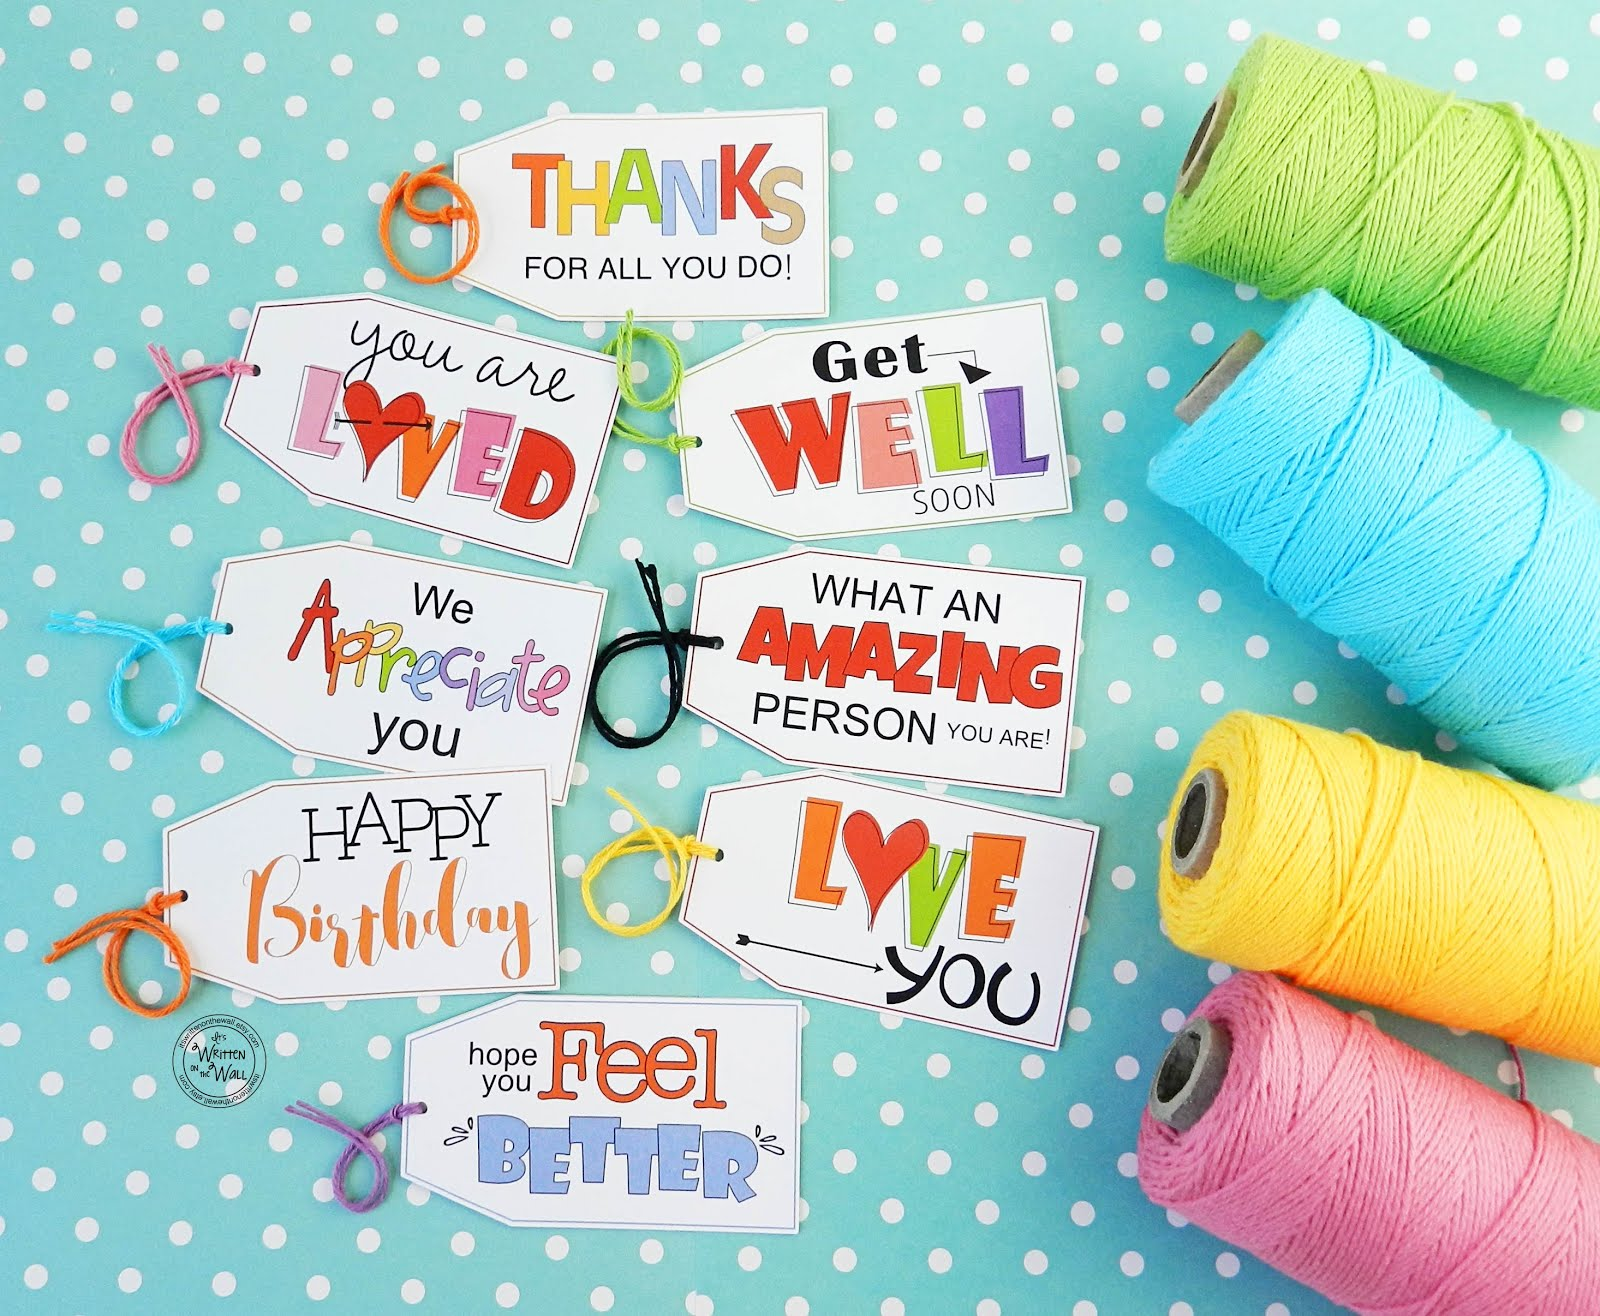 Tags for All Occasions -8-different messages